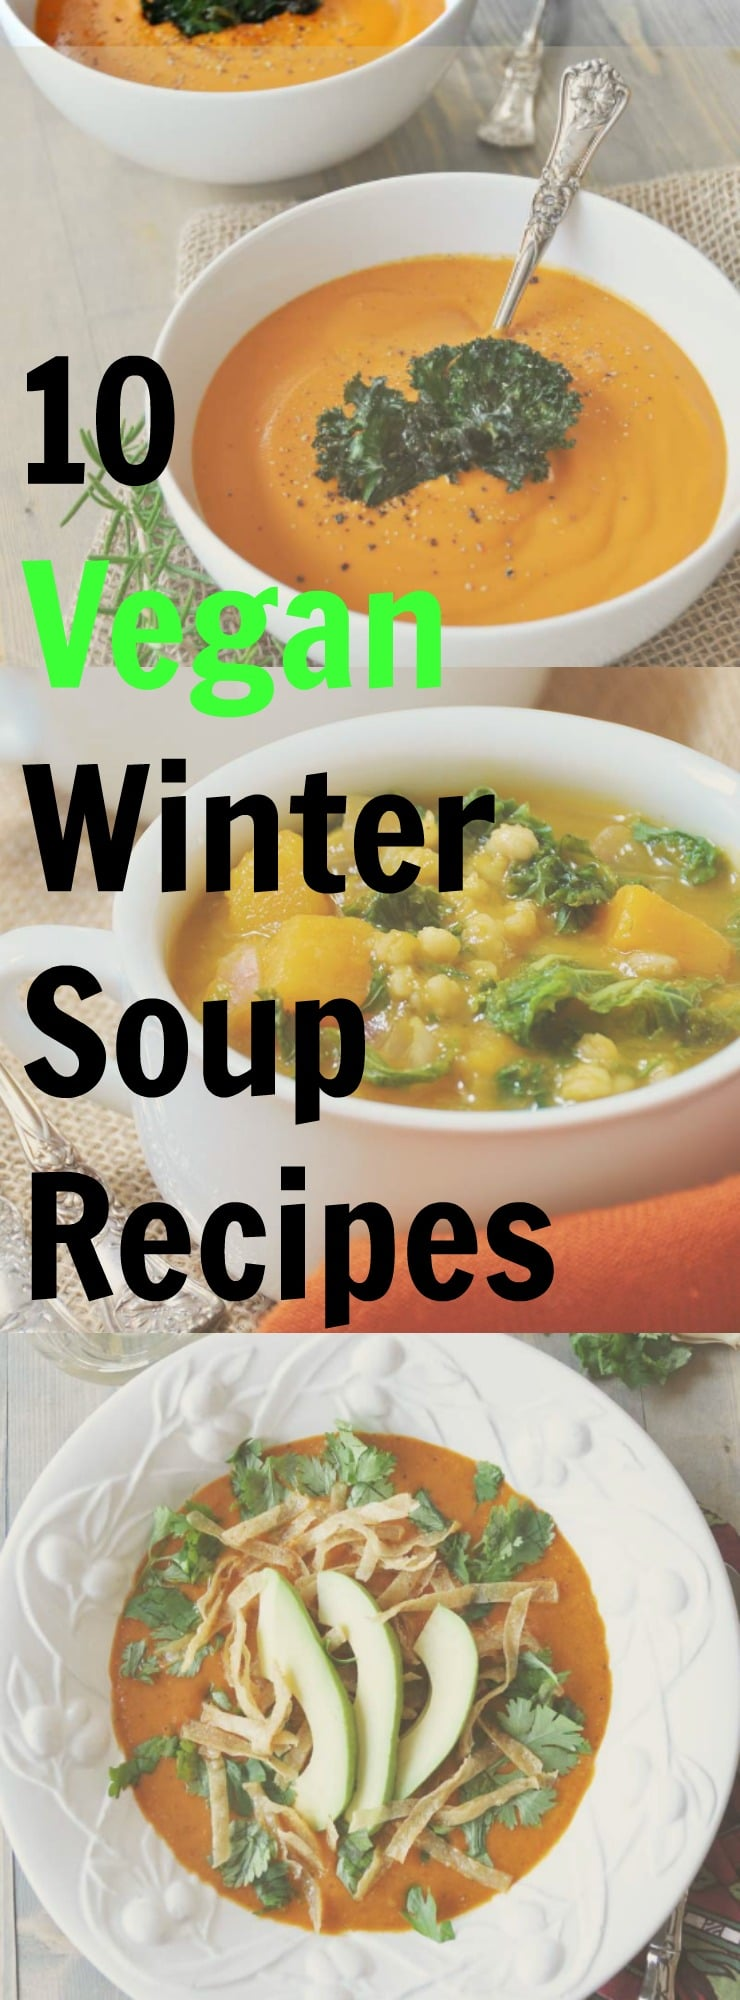 10 Vegan Soup Recipes To Get You Through The Rest Of The Winter And A Weekly Meal Plan Veganosity